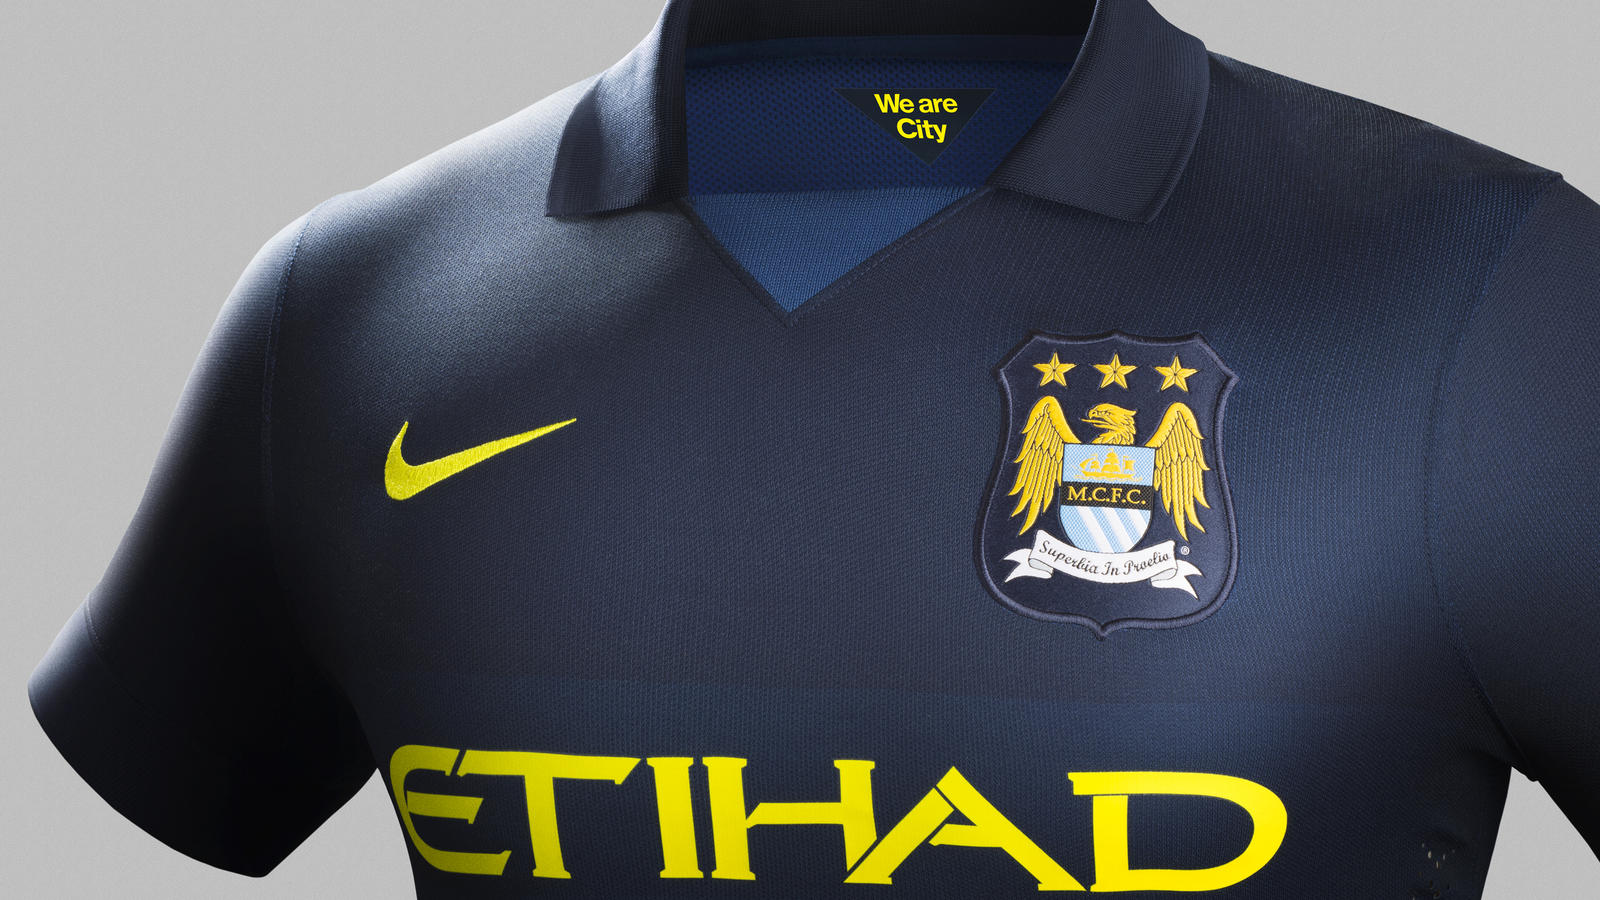 competitive price 42beb 1a379 Manchester City and Nike Unveil Away Kit for 2014-15 Season ...